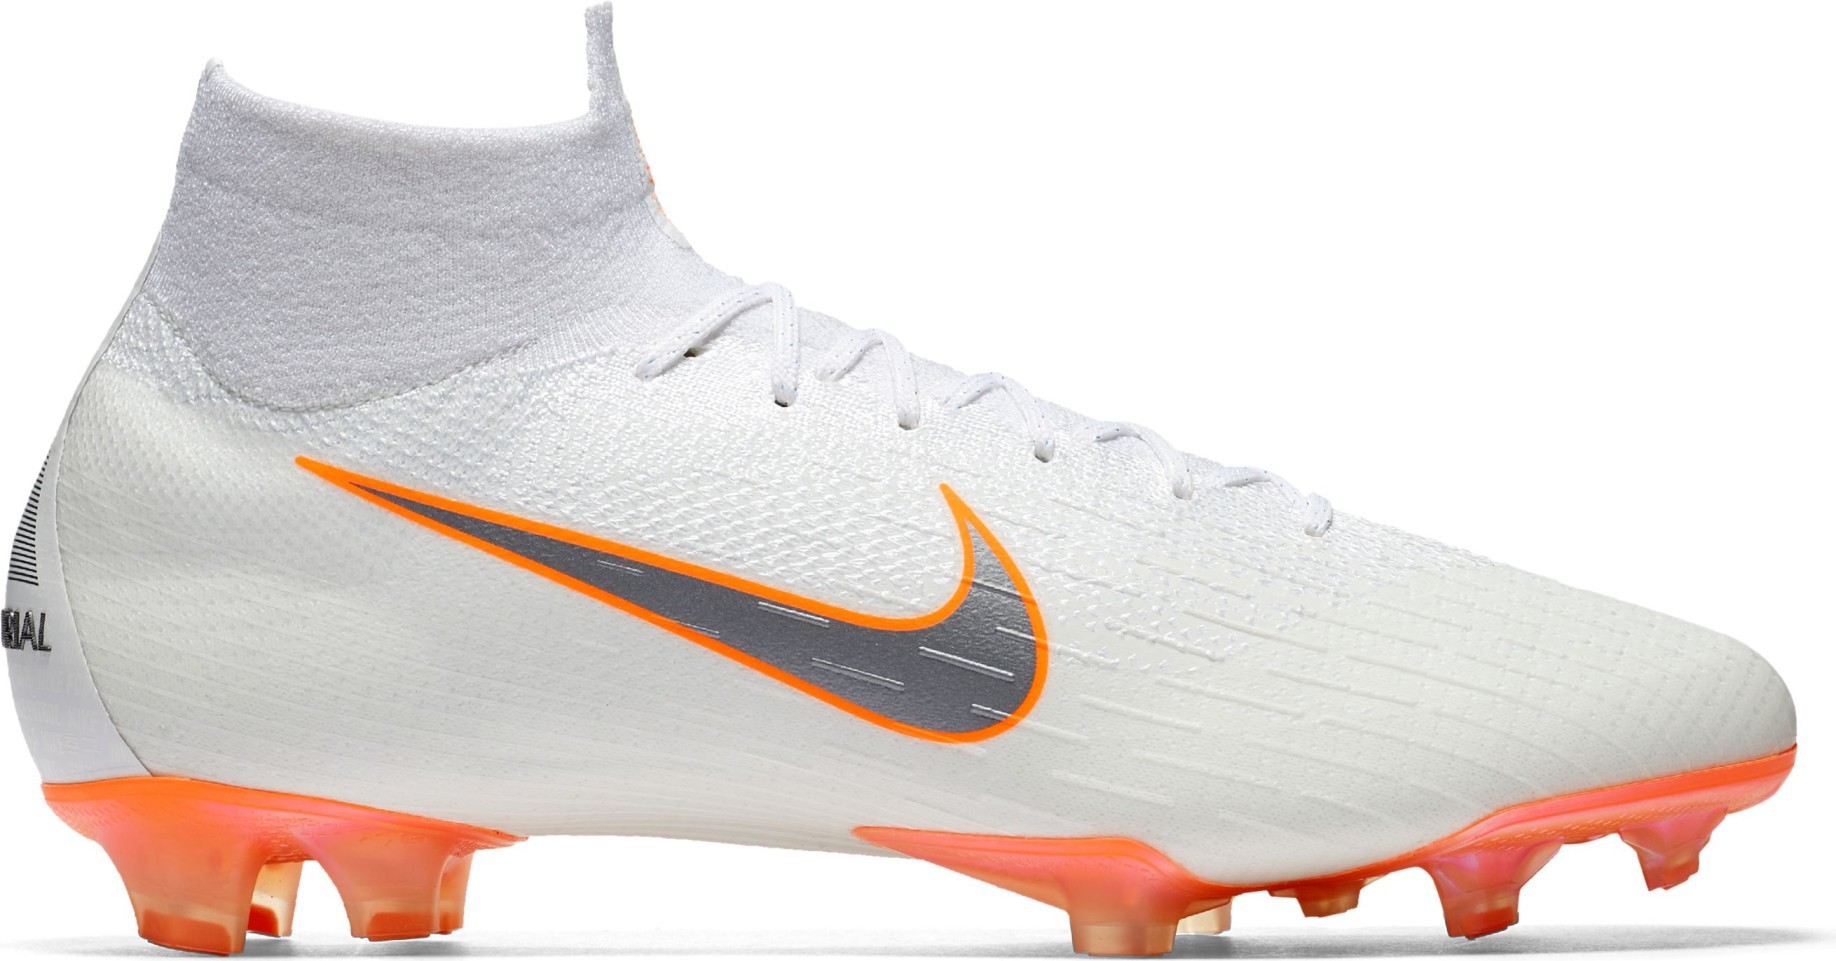 vente chaude en ligne 88b2b 4a879 Football boots Nike Mercurial Superfly 360 Elite DF FG Just Do It Pack